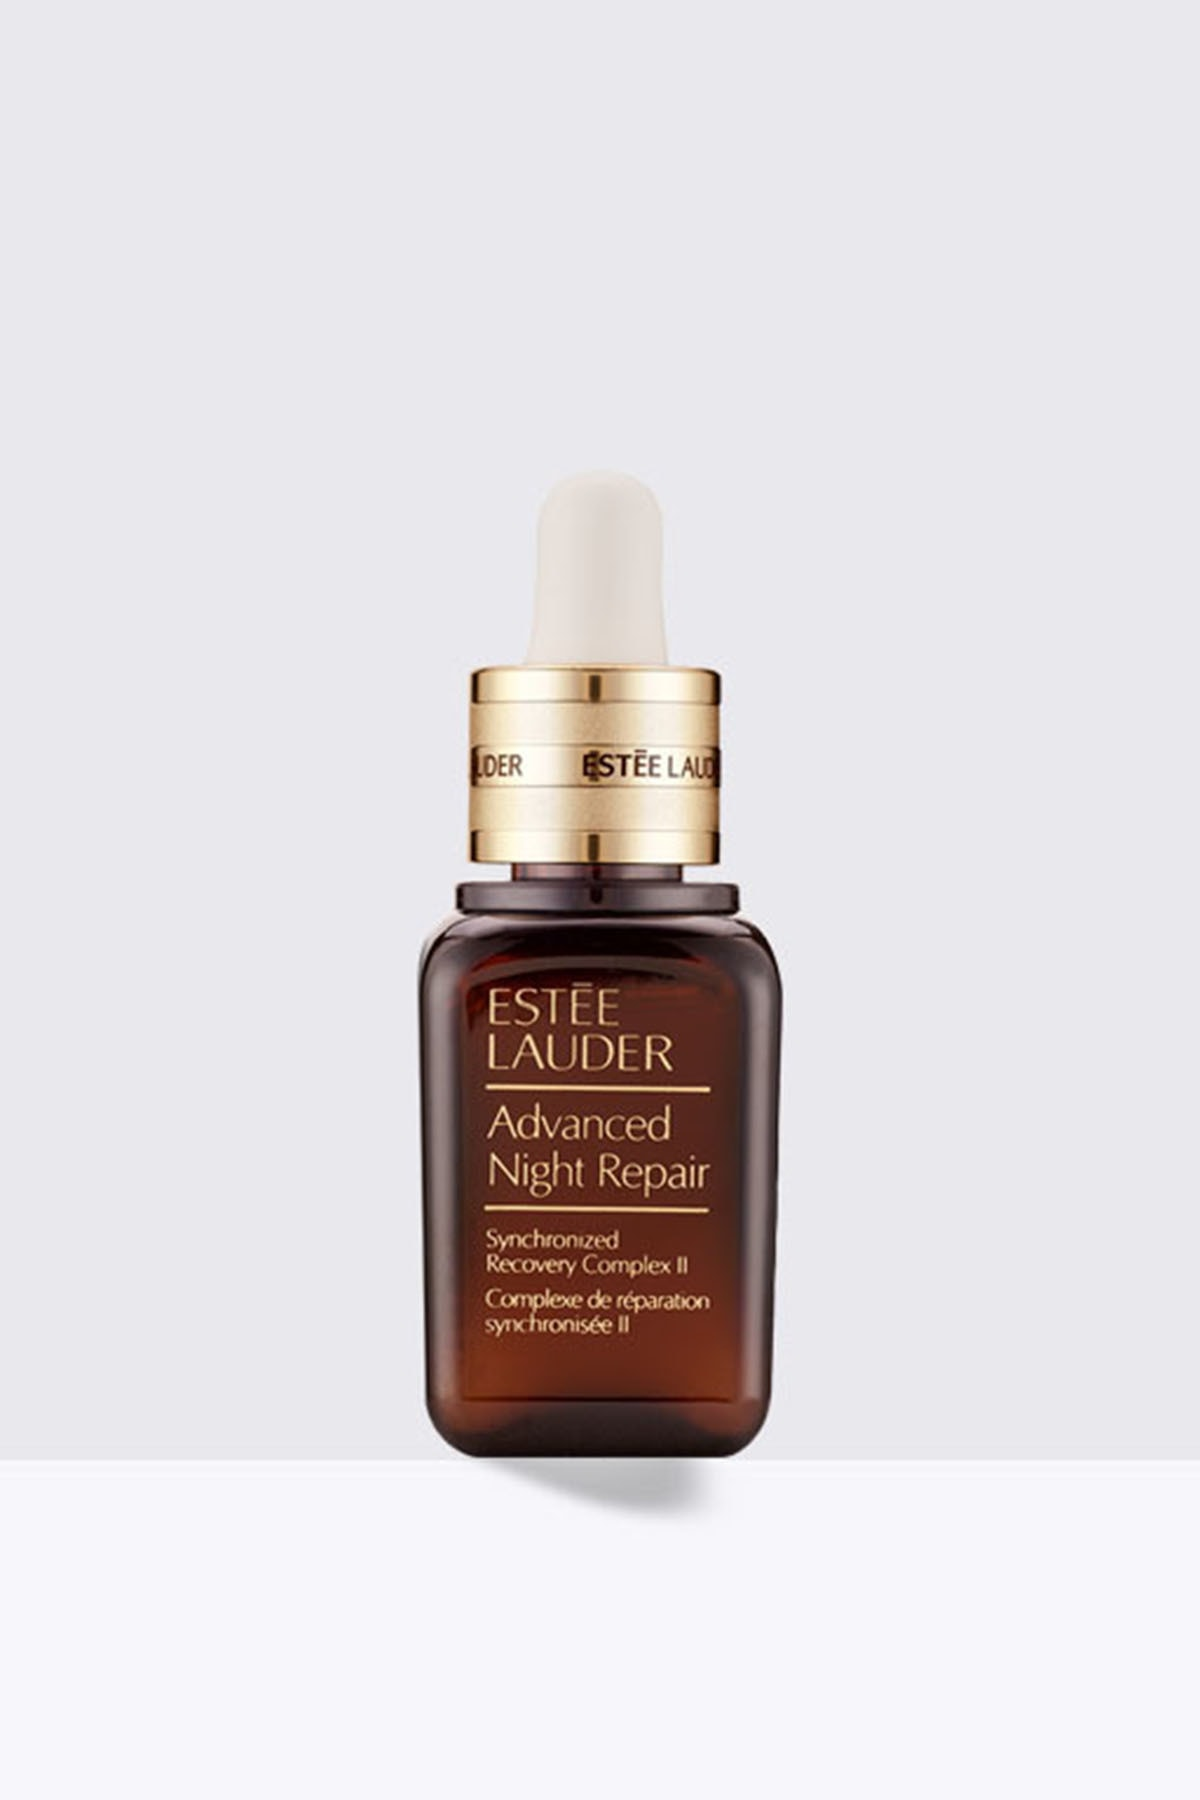 Estee Lauder Yaşlanma Karşıtı Gece Serumu - Advanced Night Repair 20 Ml- 50 Ml - 75 Ml